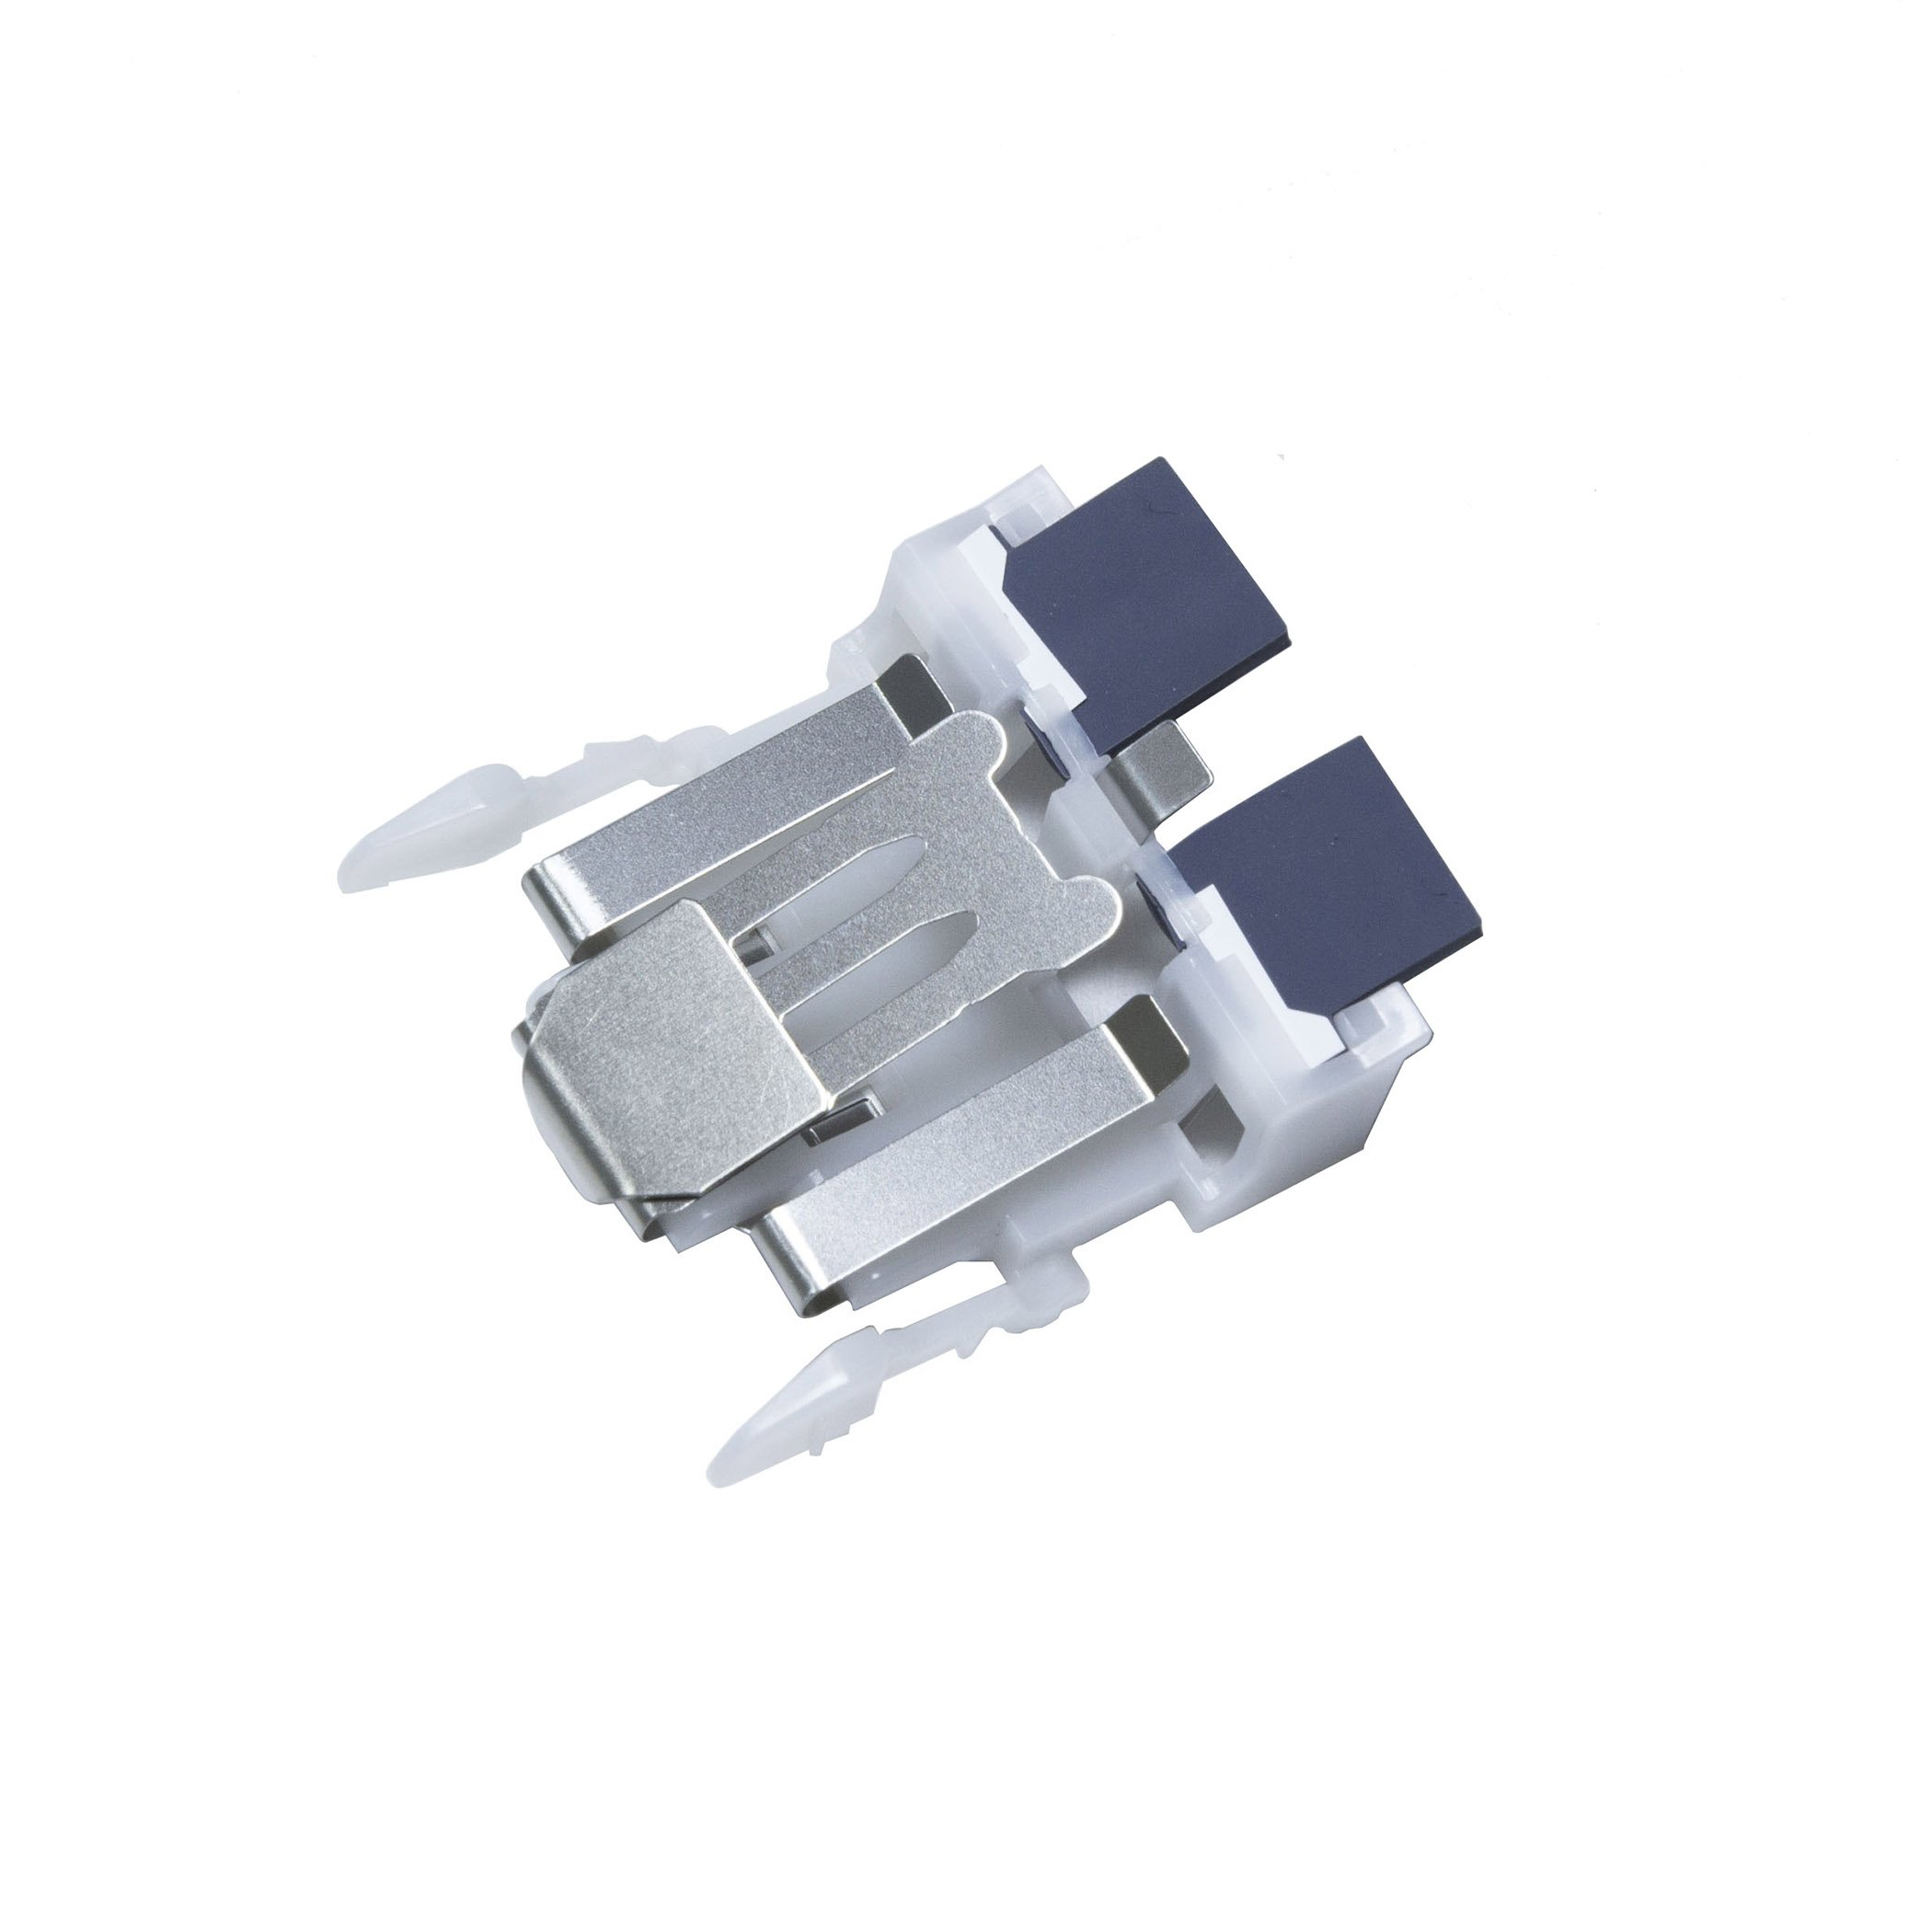 YANZEO PA03586-0002 Pad Assembly for Fujitsu ScanSnap S1500 S1500M N1800 Fi-6110